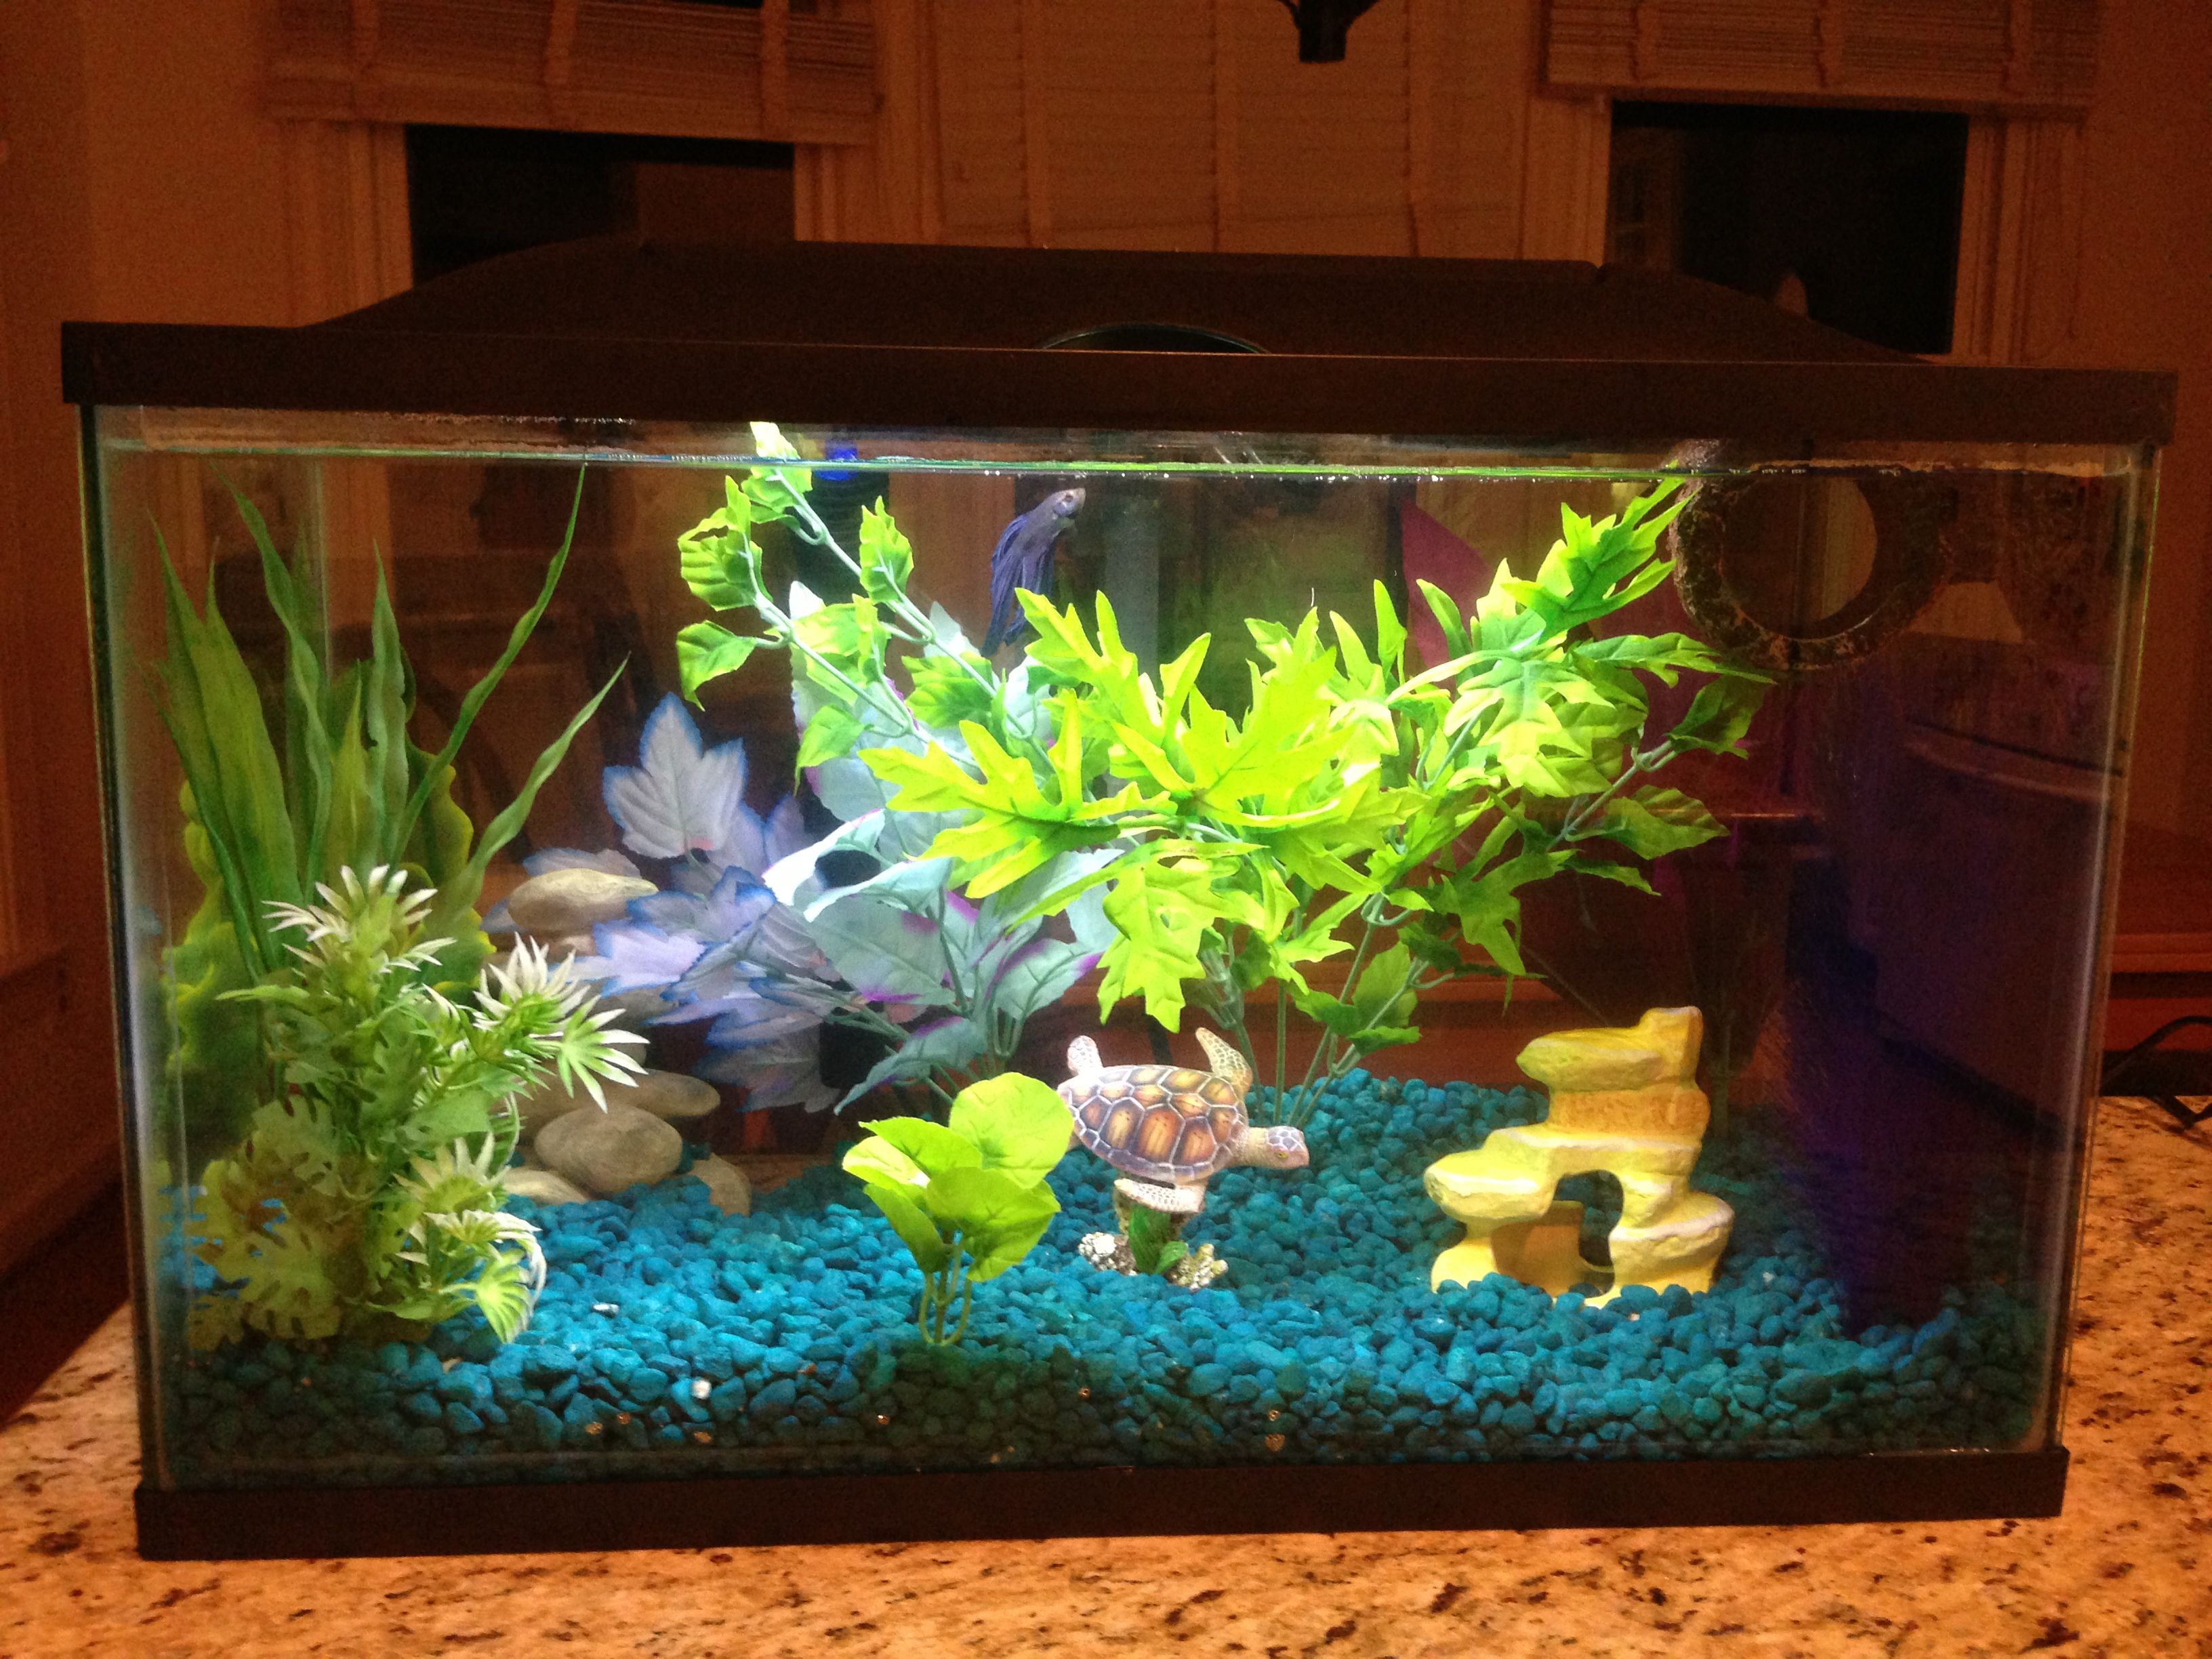 Fish tank decorations 10 gallon diy betta fish tank for Fish for a 10 gallon tank